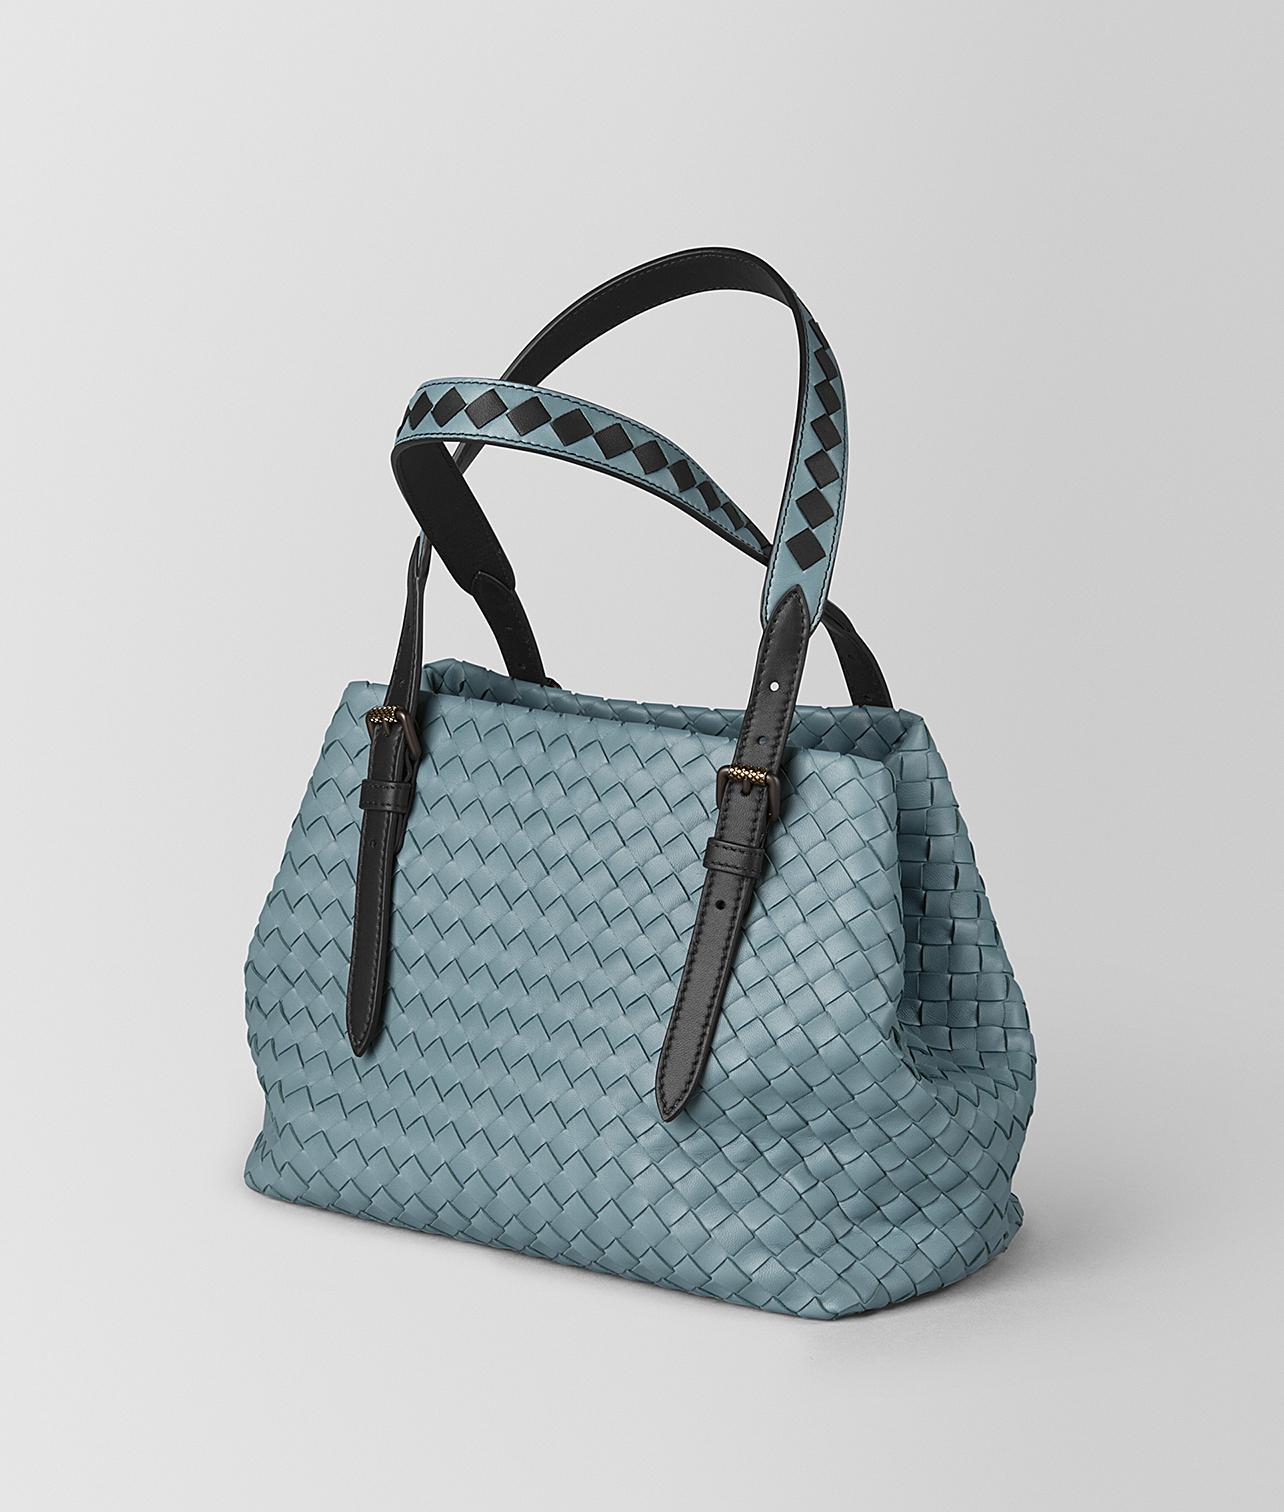 dca4c2ec1fed Lyst - Bottega Veneta Mini Cesta Bag In Intrecciato Nappa in Blue